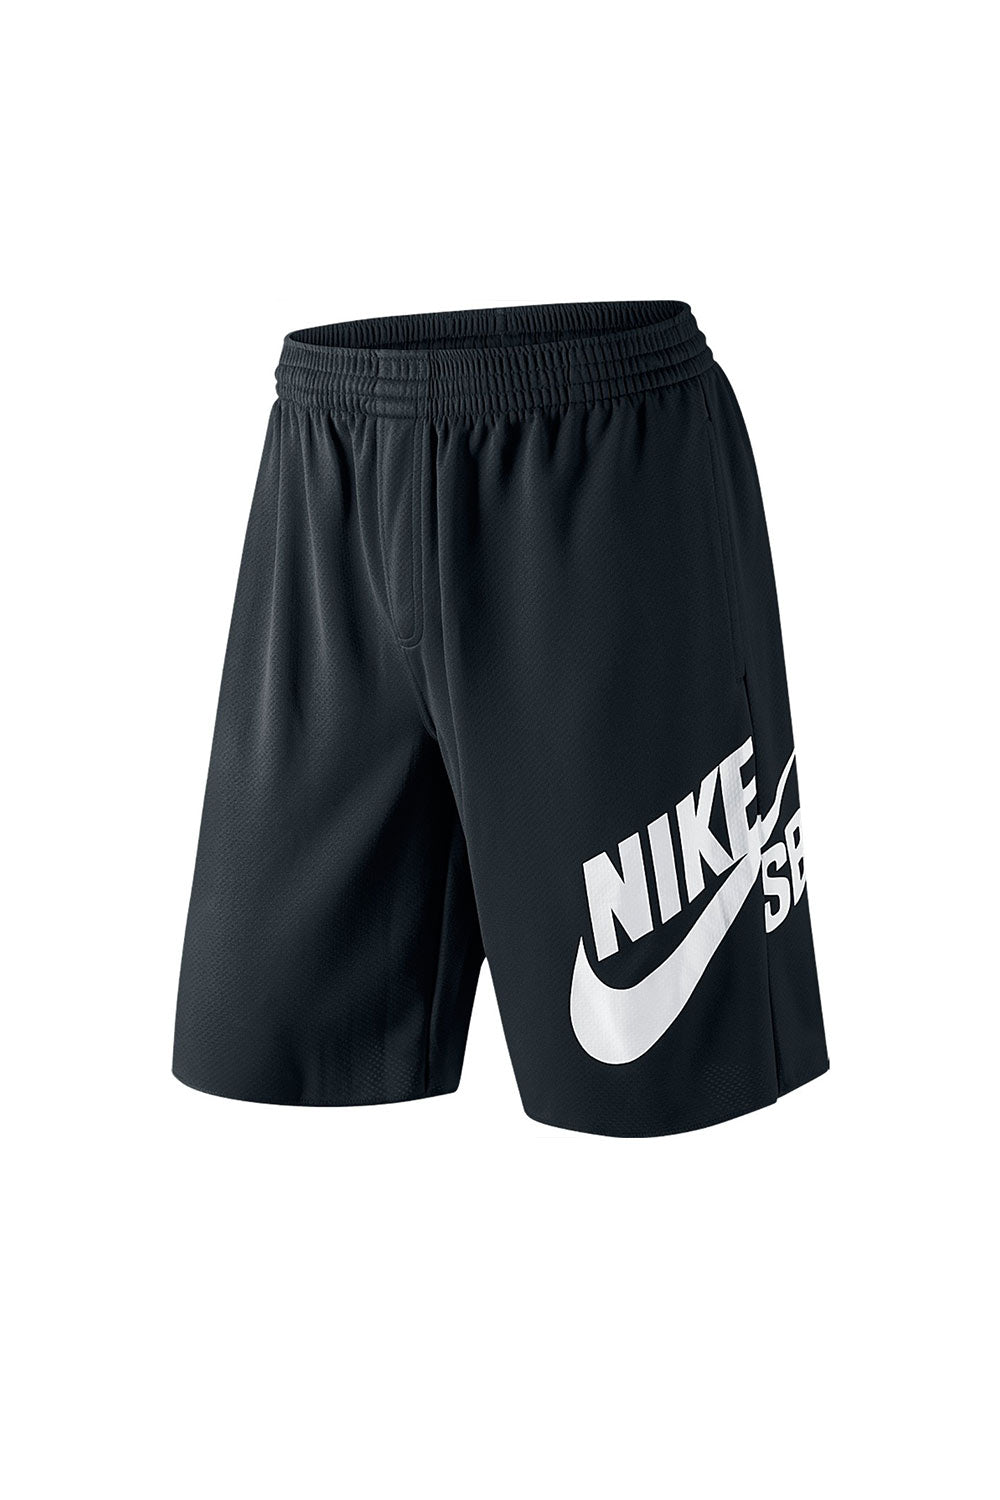 Nike SB | Shop Nike SB Dri-FIT Sunday Shorts - Black | Nike SB Online